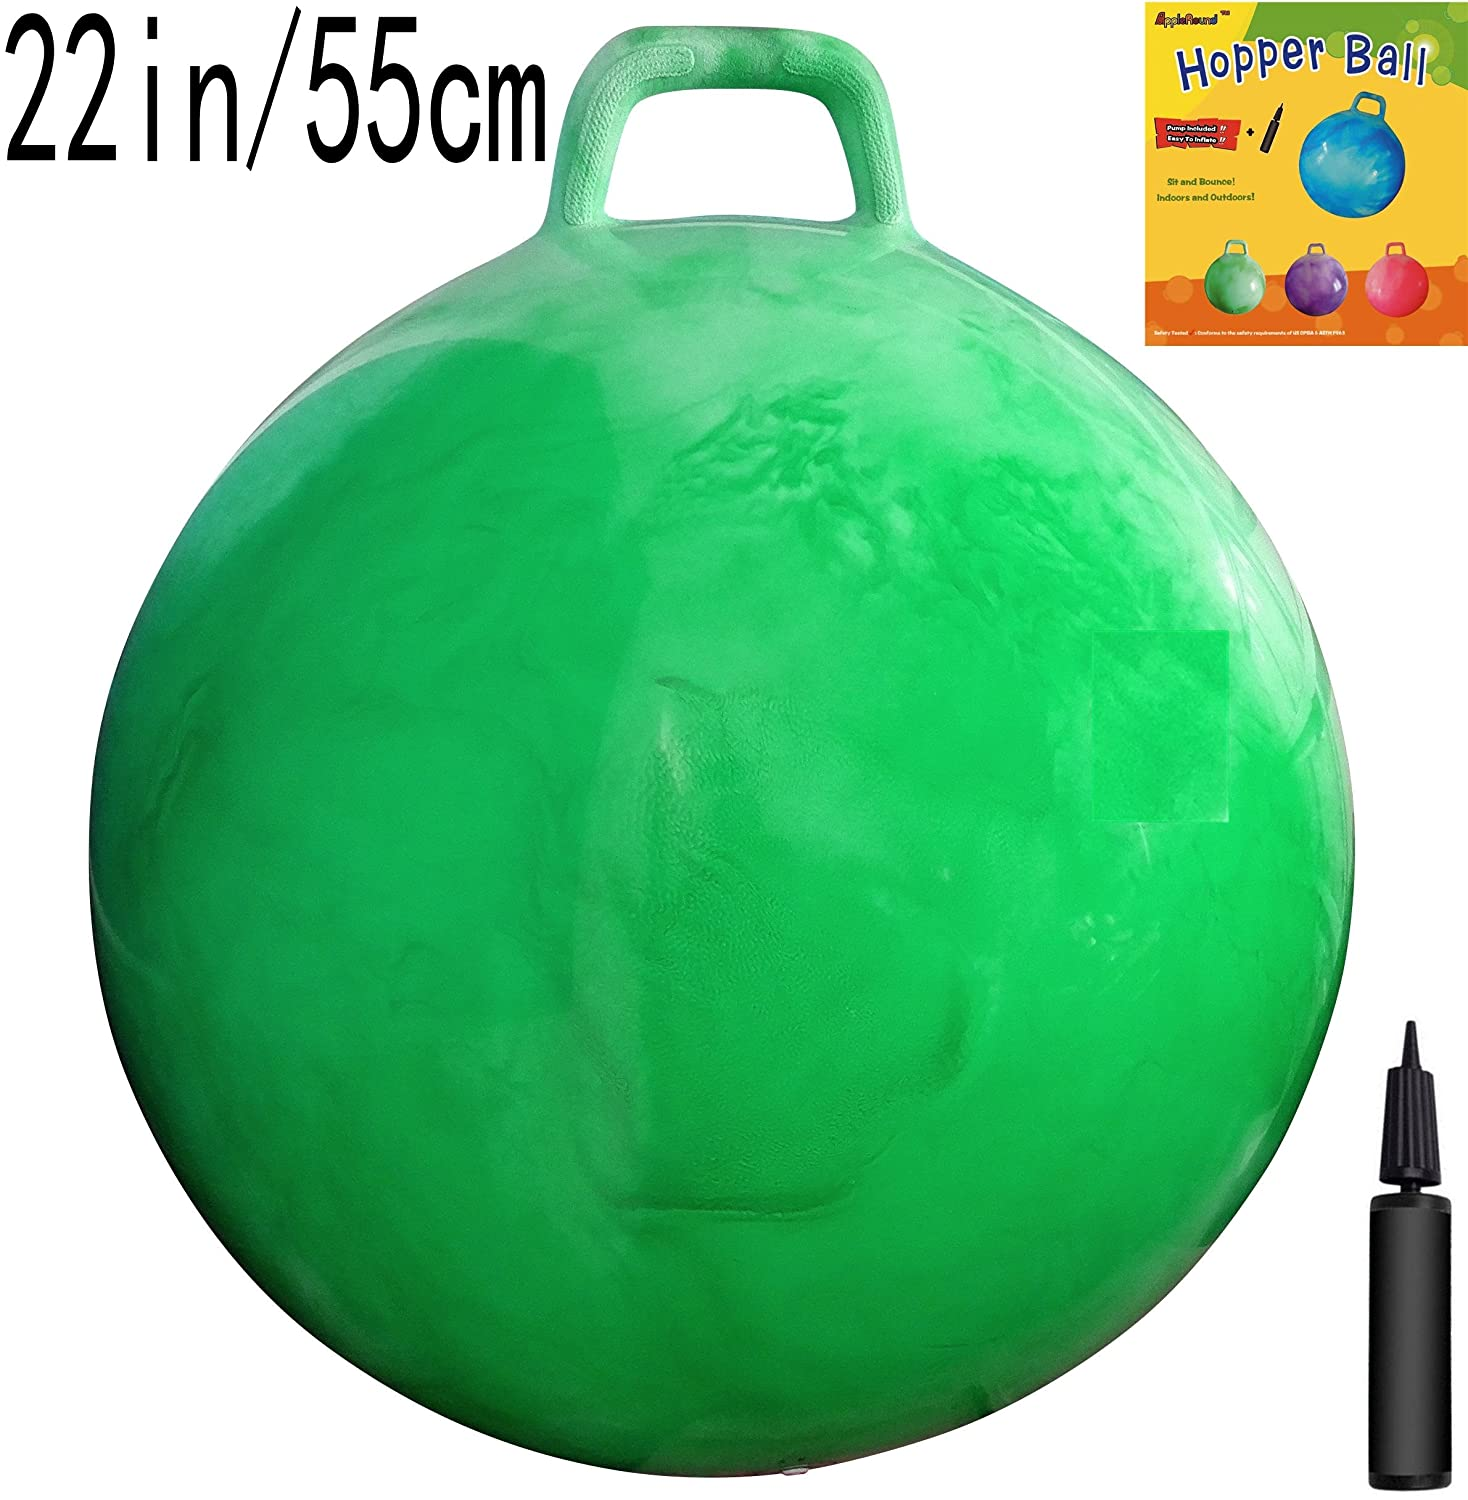 Space Hopper Ball with Air Pump: 22in/55cm Diameter for Ages 10-12, Hop Ball, Kangaroo Bouncer, Hoppity Hop, Jumping Ball, Sit  Bounce by AppleRound